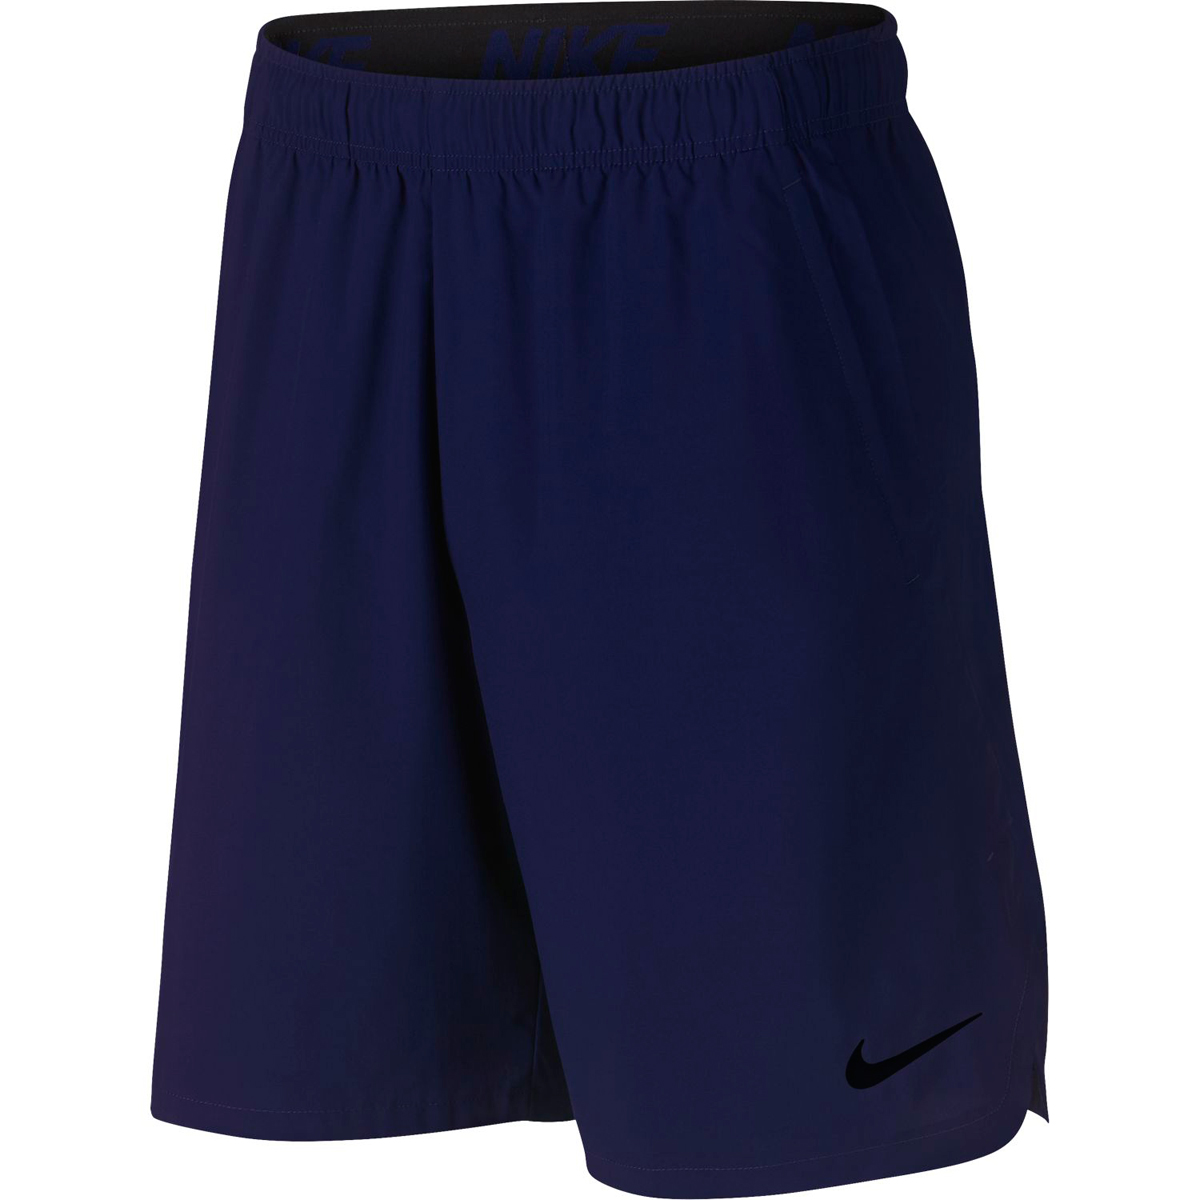 Nike Men's Flex Woven Training Shorts - Blue, L